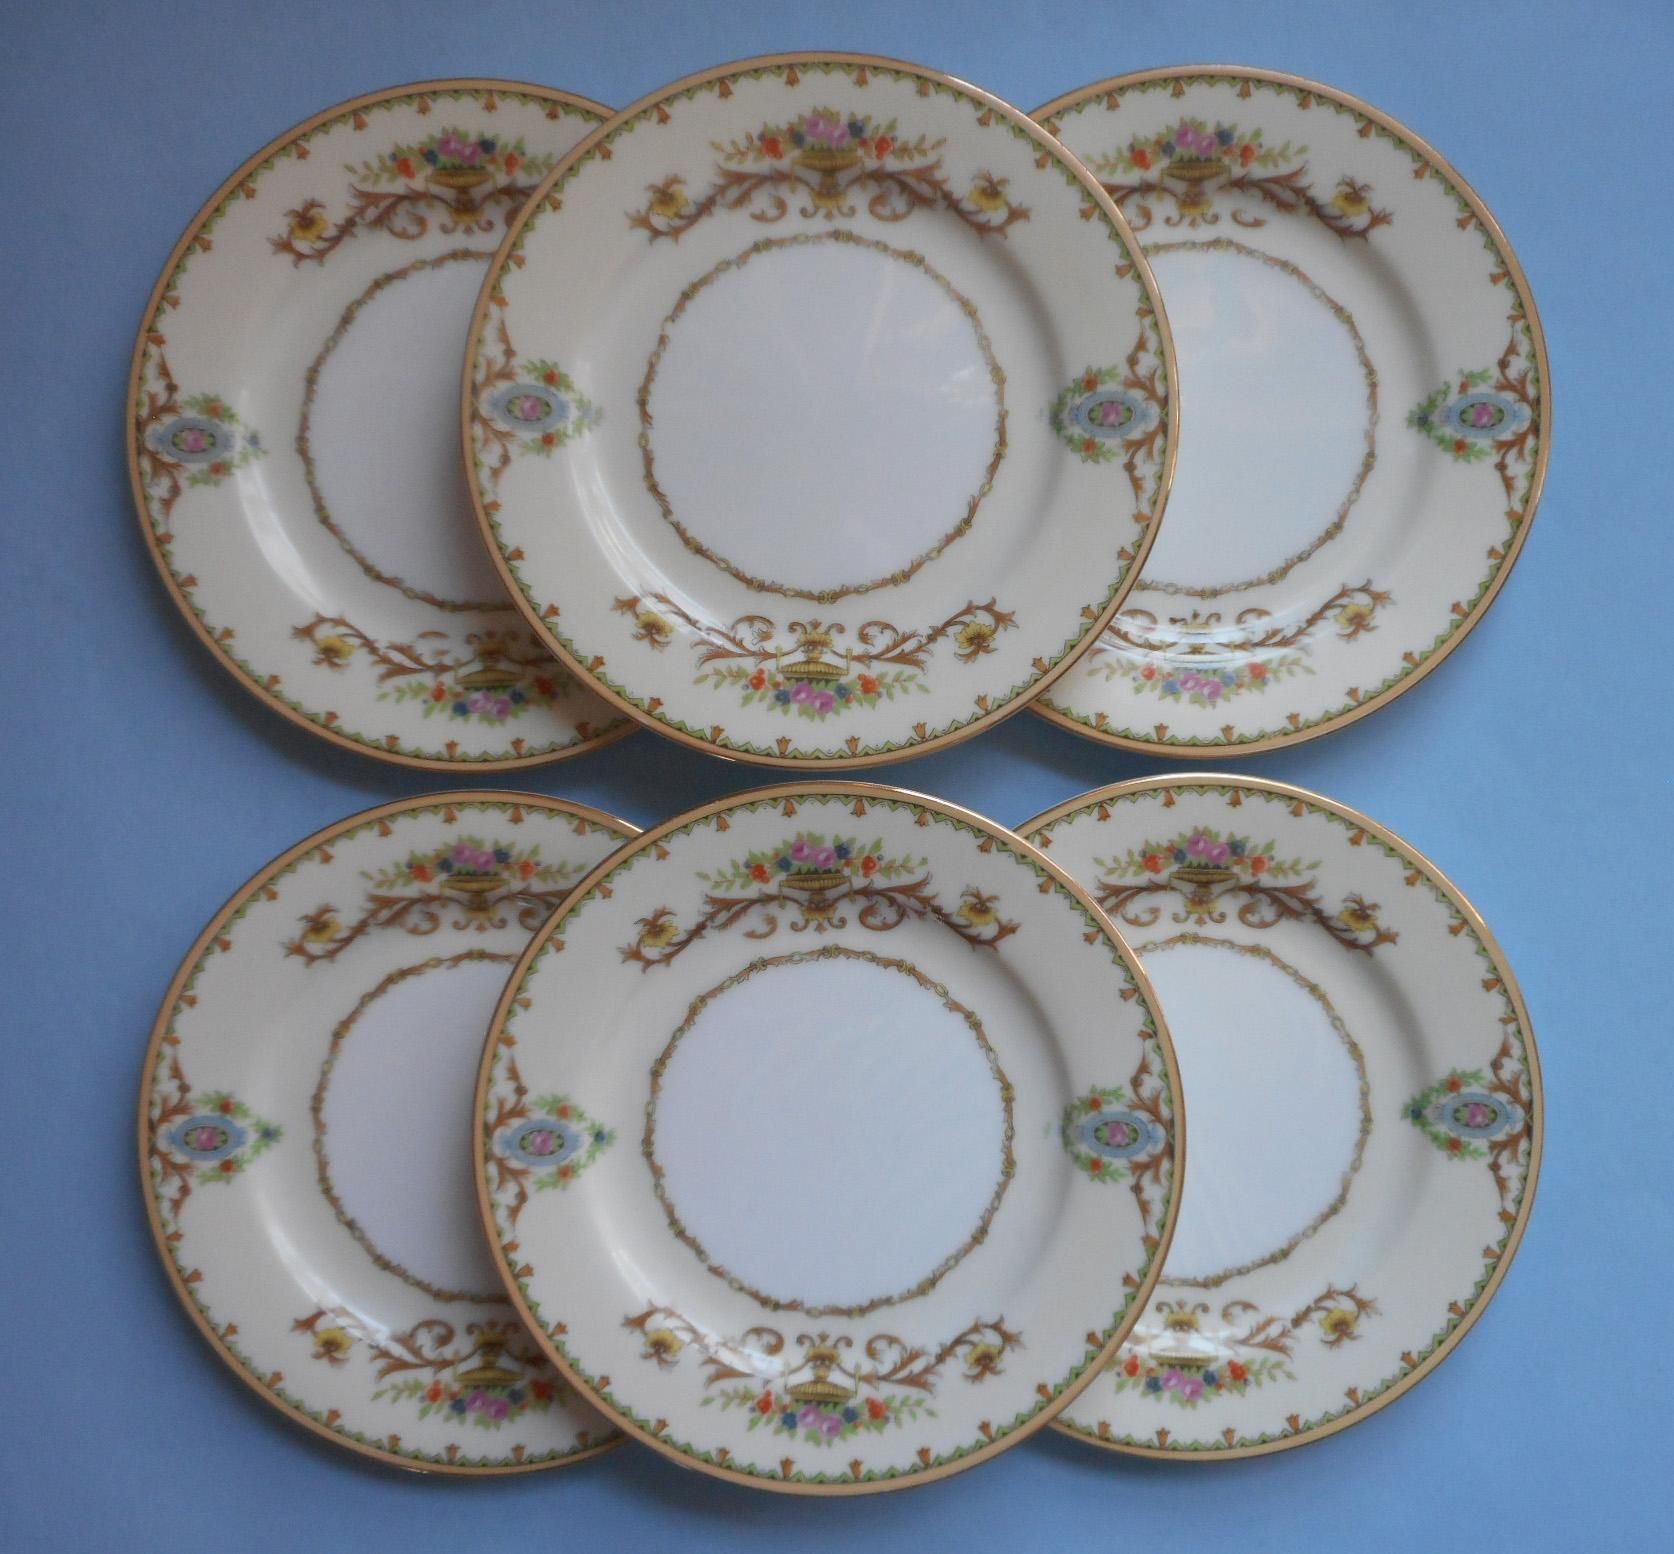 2 SETS GOLD ENCRUSTED BOUILLON CREAM SOUP BOWLS /& SAUCERS FAB MINTON CHINA H1886